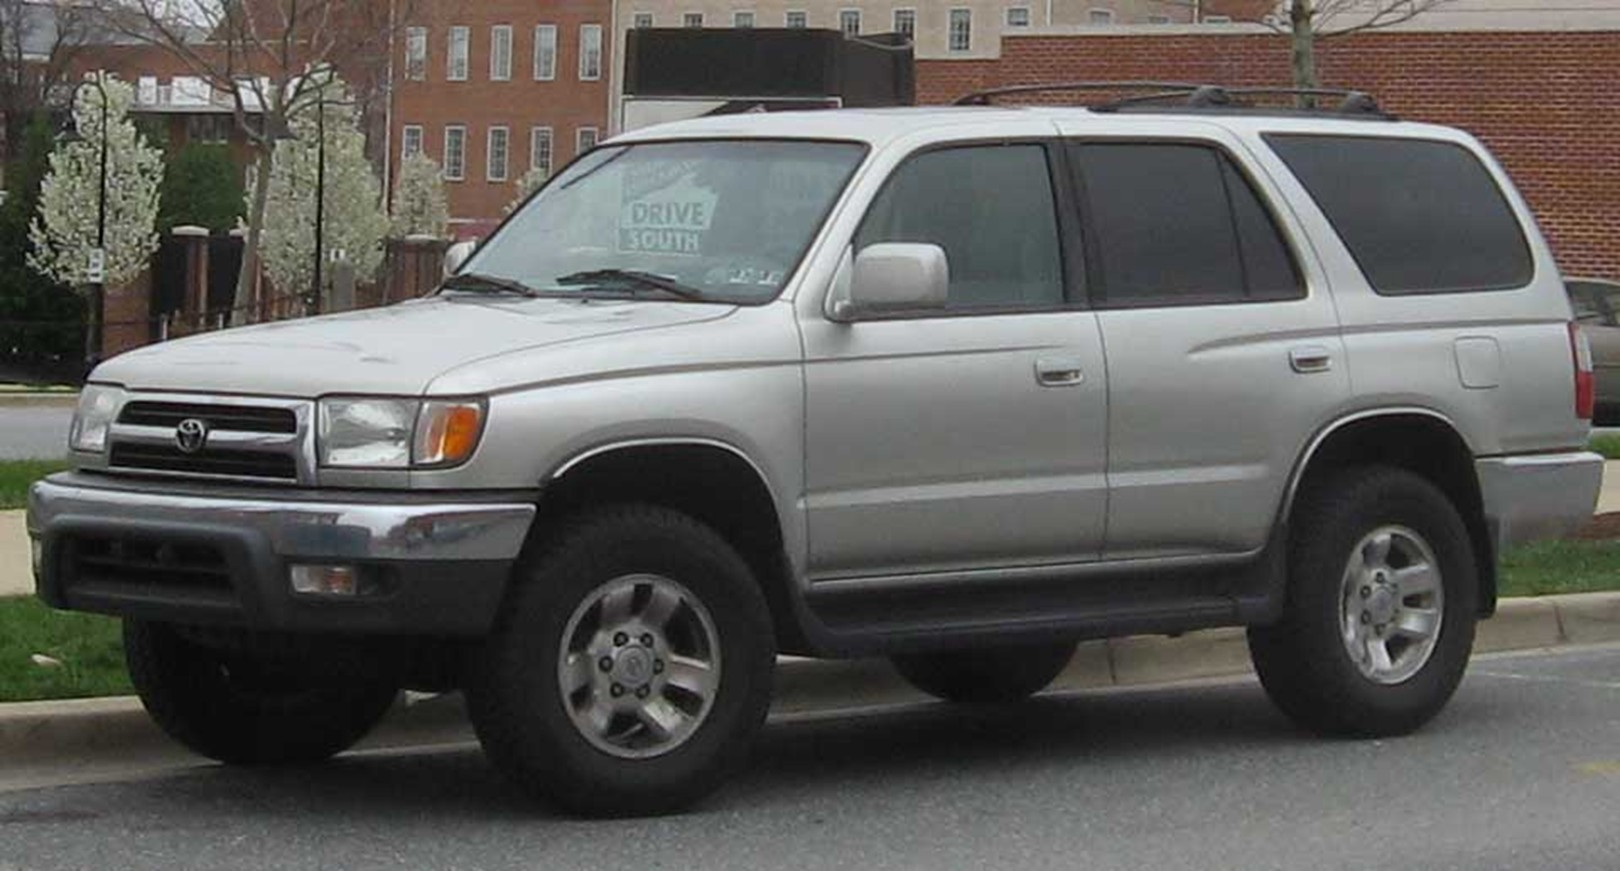 Tiffany Daniels was driving a Toyota 4 Runner (similar), that was found on August 20, 2013, at Park West in Pensacola.